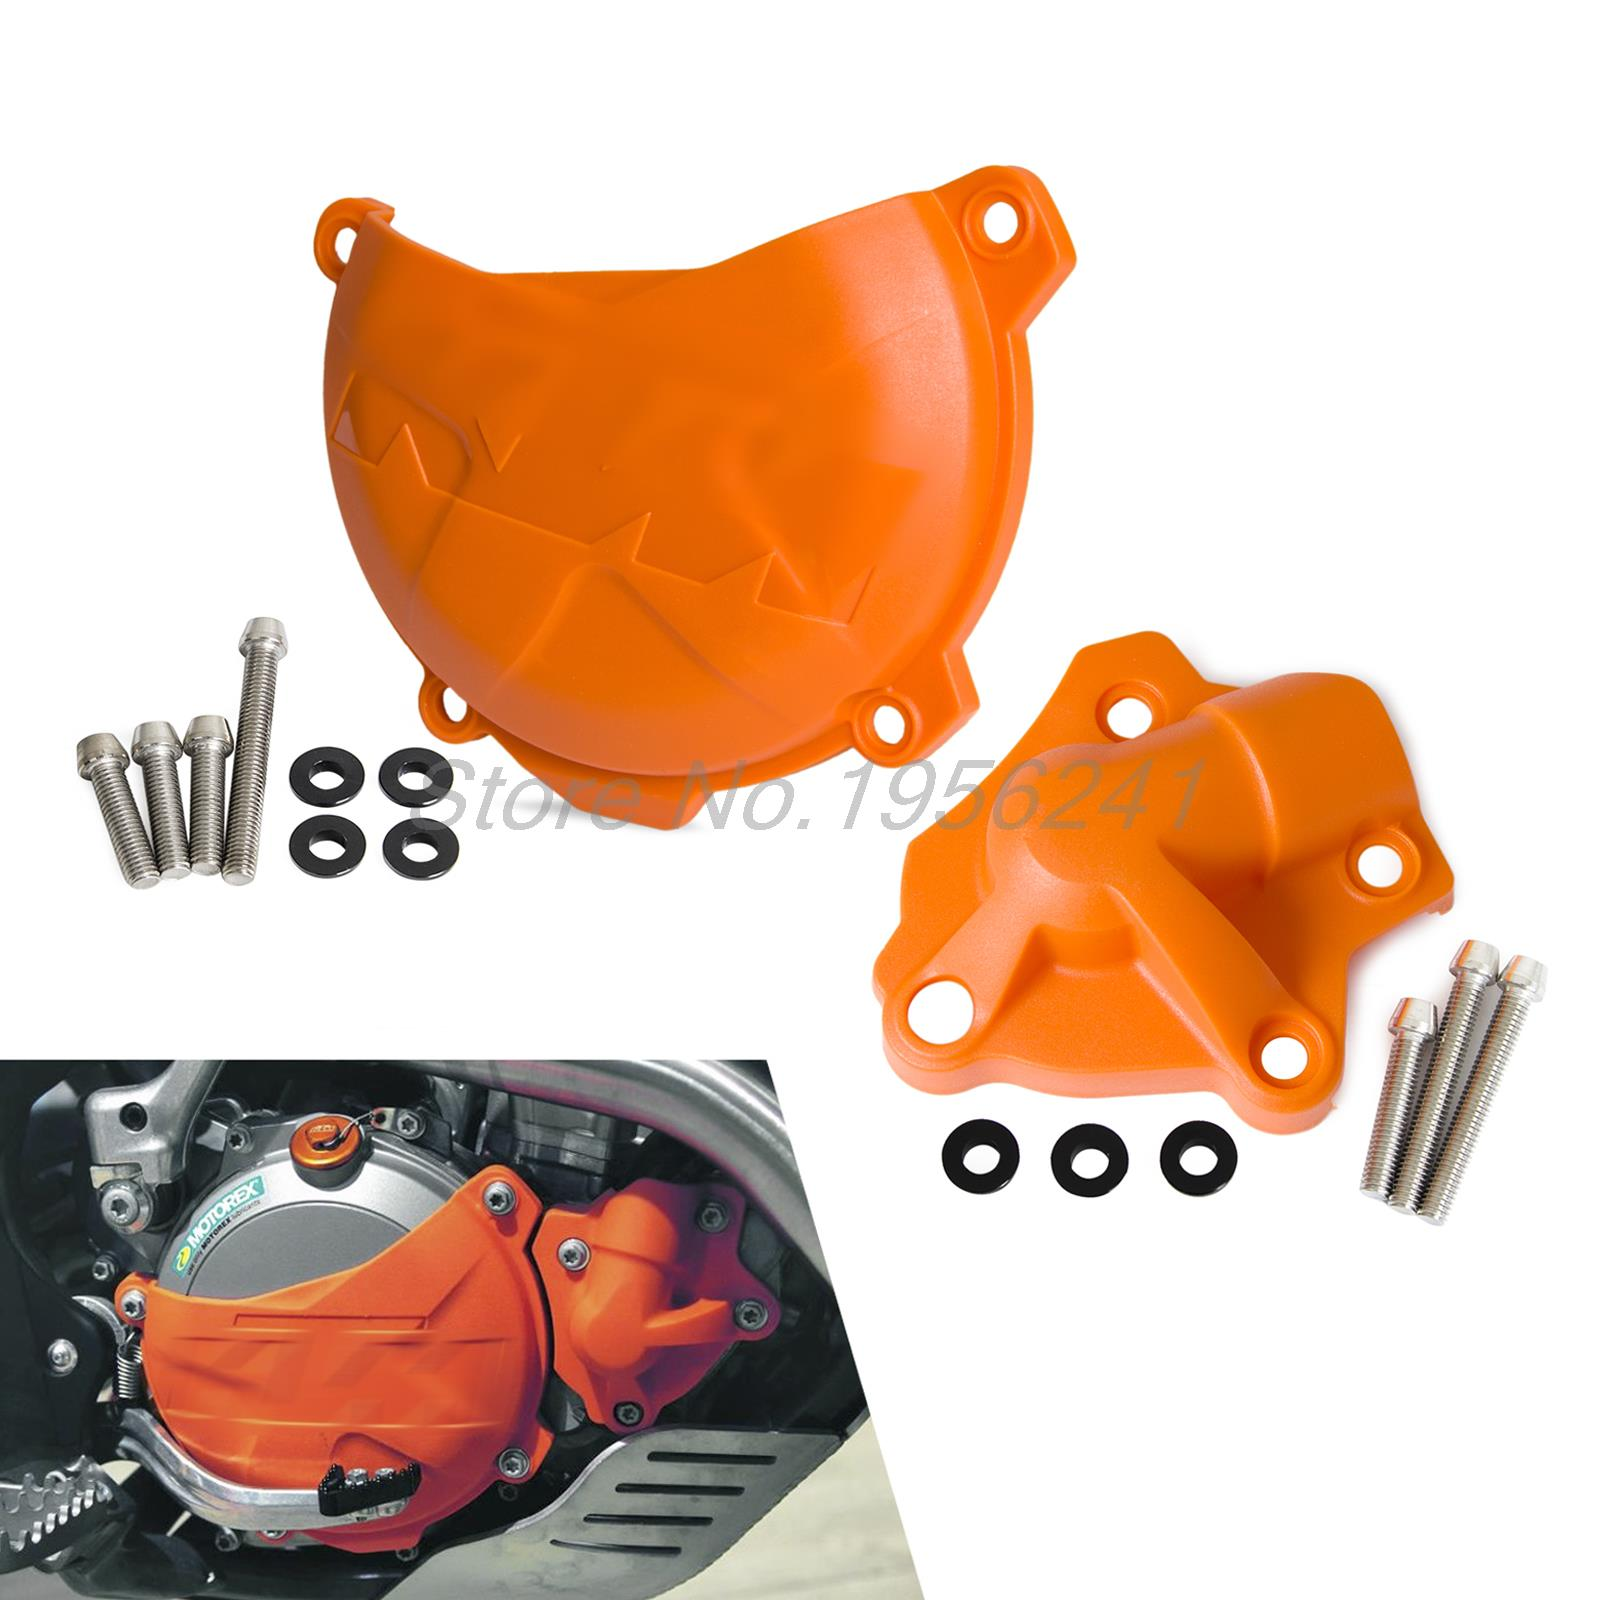 Clutch Cover/Water Pump Cover Protector for KTM 250 350 SXF SX-F XCF XC-F EXC-F EXCF SIX DAYS XCF-W XCFW FREERIDE silencer exhaust protector can cover for ktm exc f exc sx f 450 sx f 350